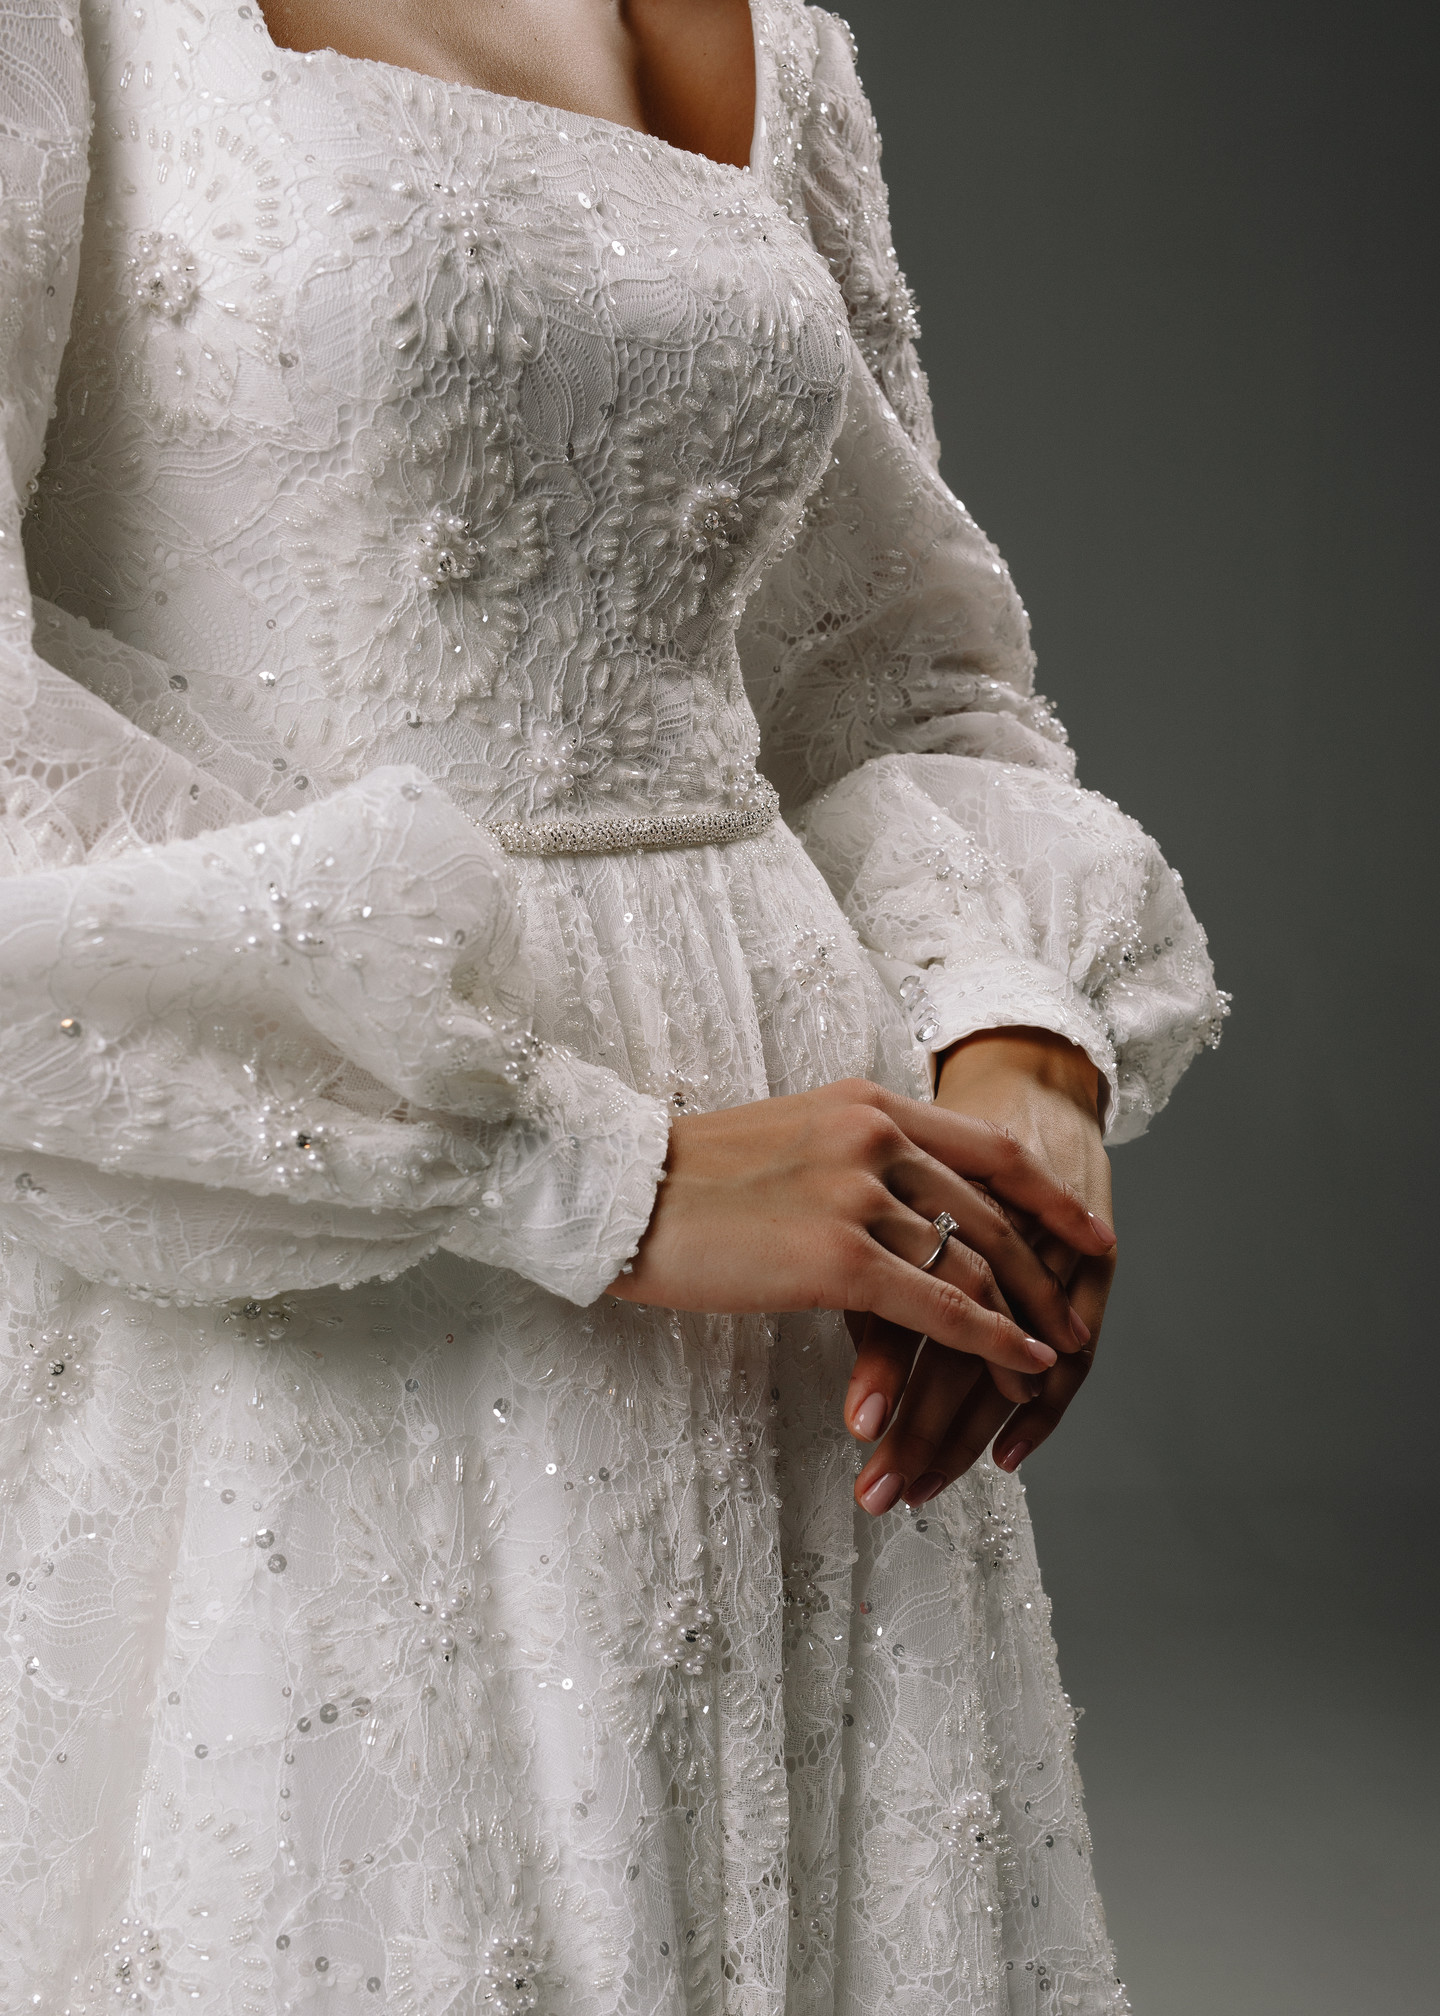 Bianca gown, 2020, couture, gown, dress, bridal, off-white, lace, A-line, embroidery, sleeves, train